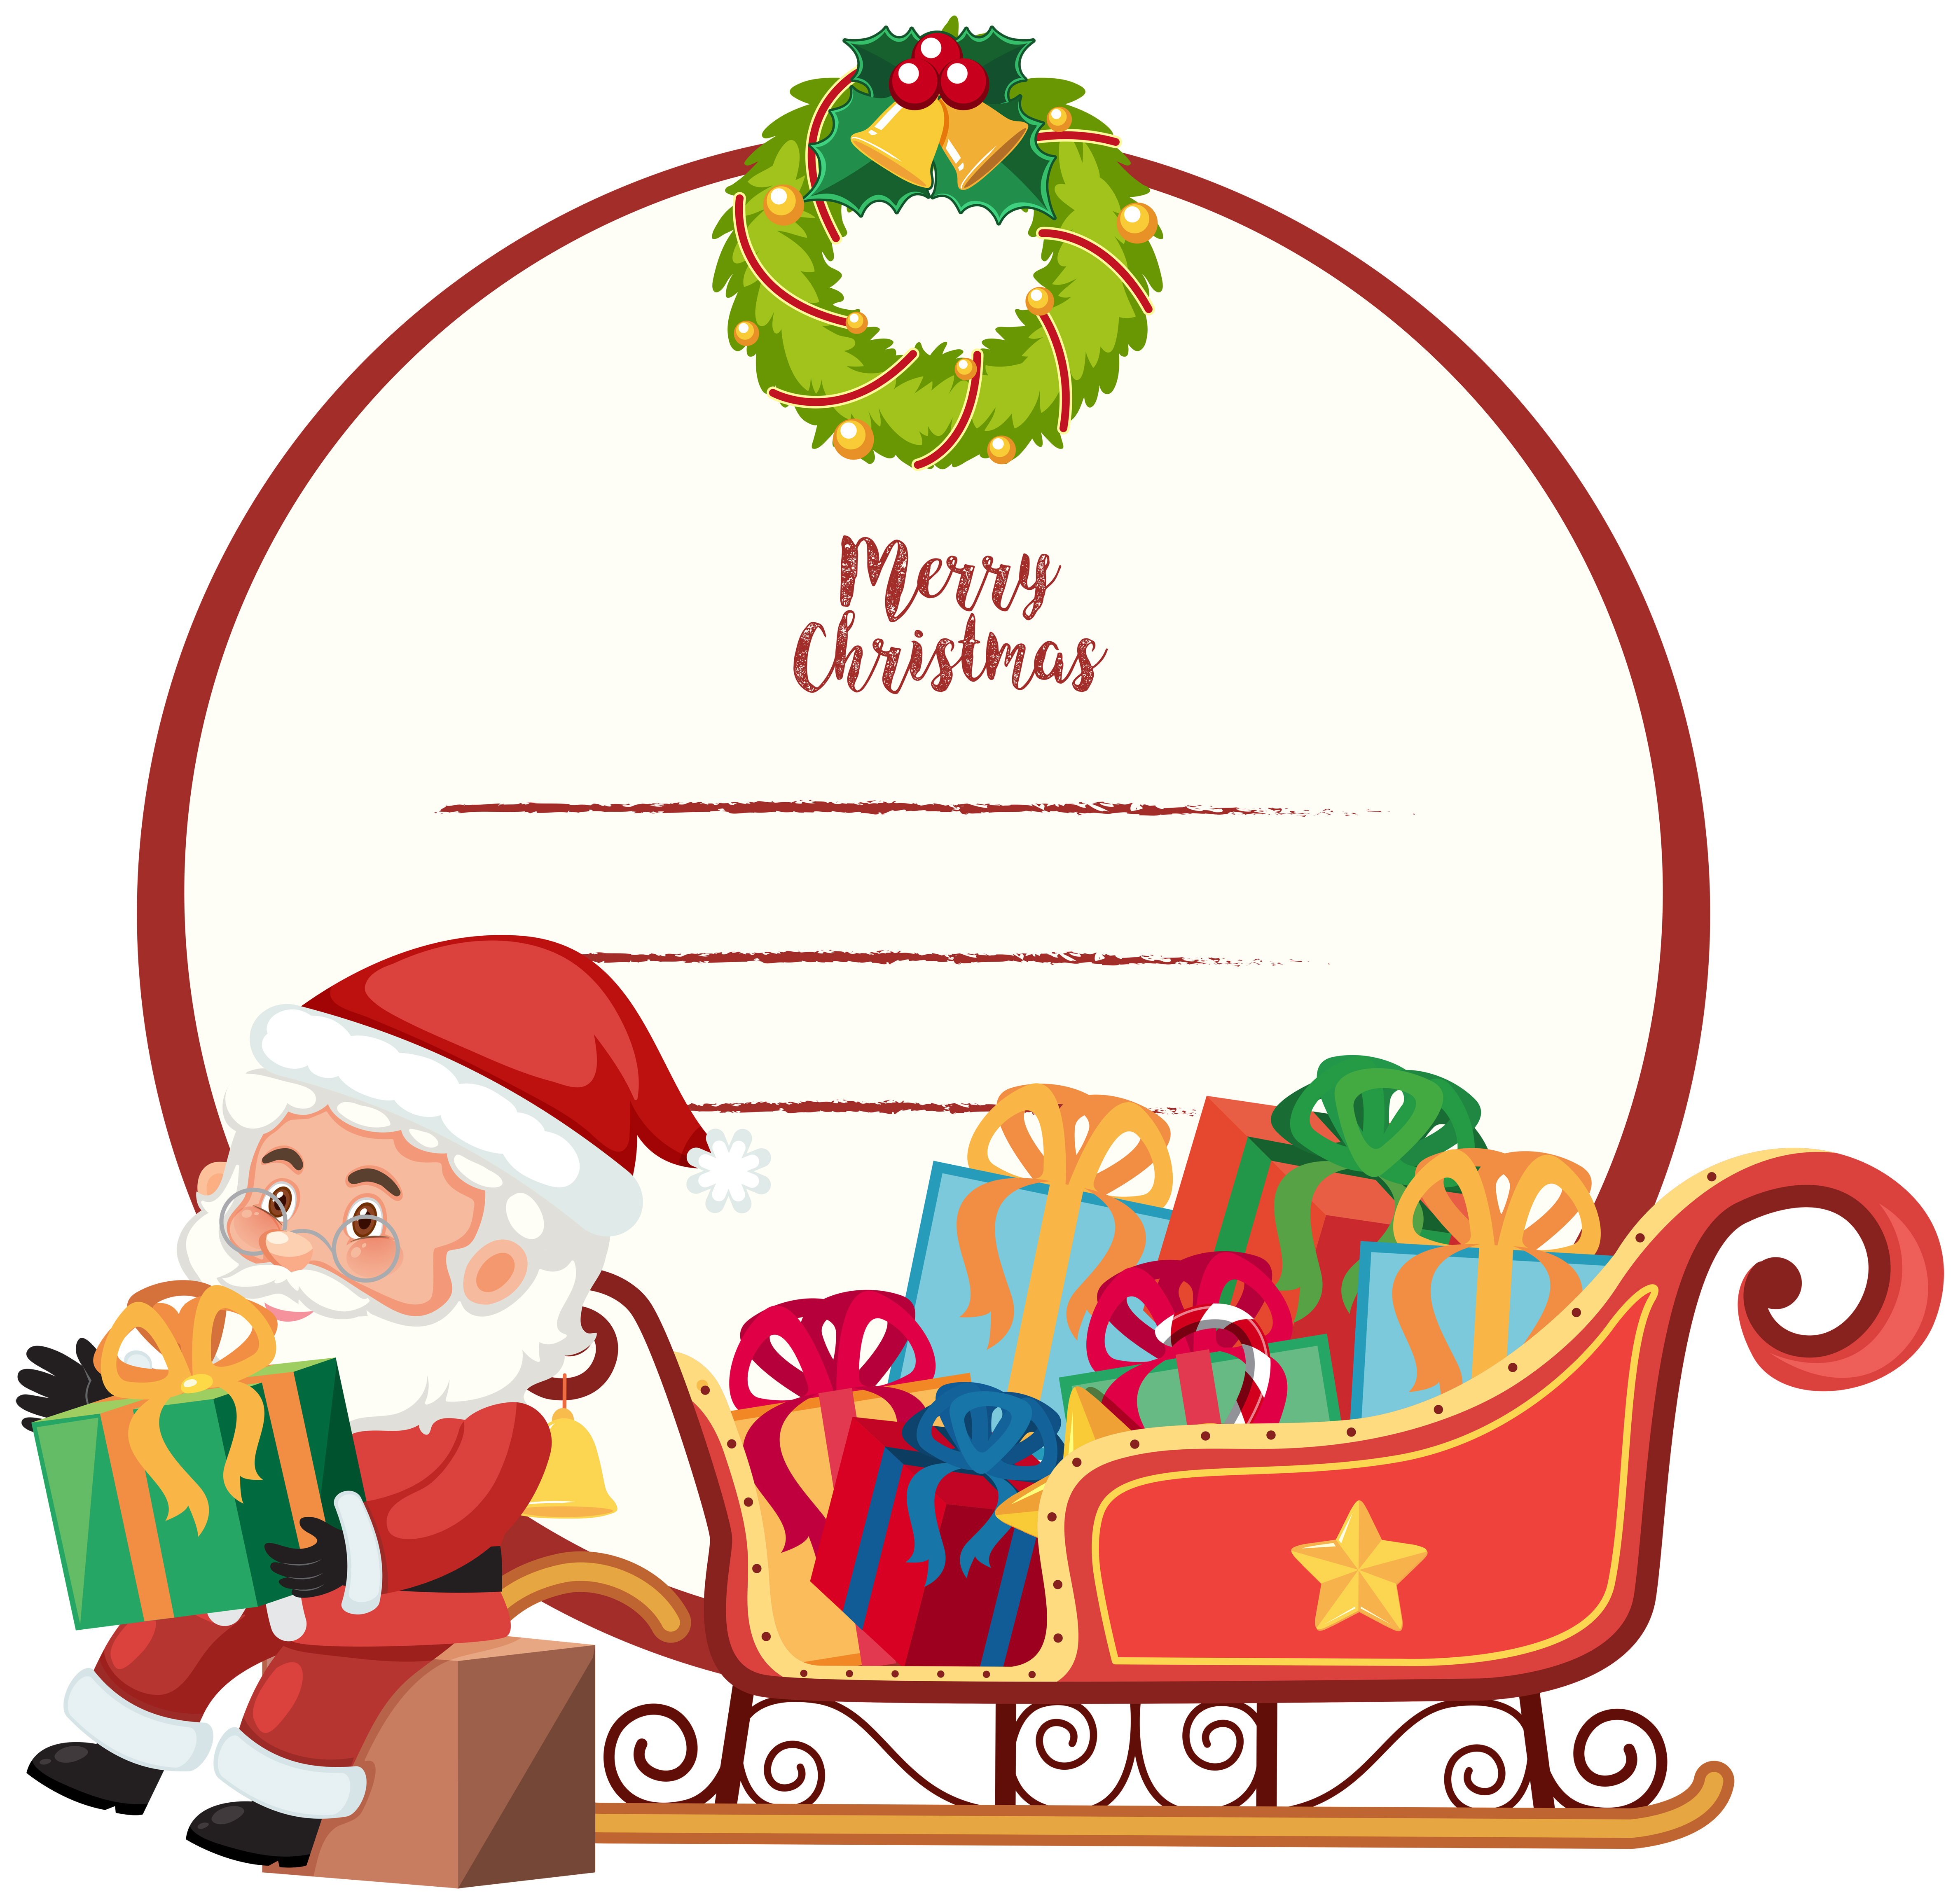 a merry christmas card template 589266  download free